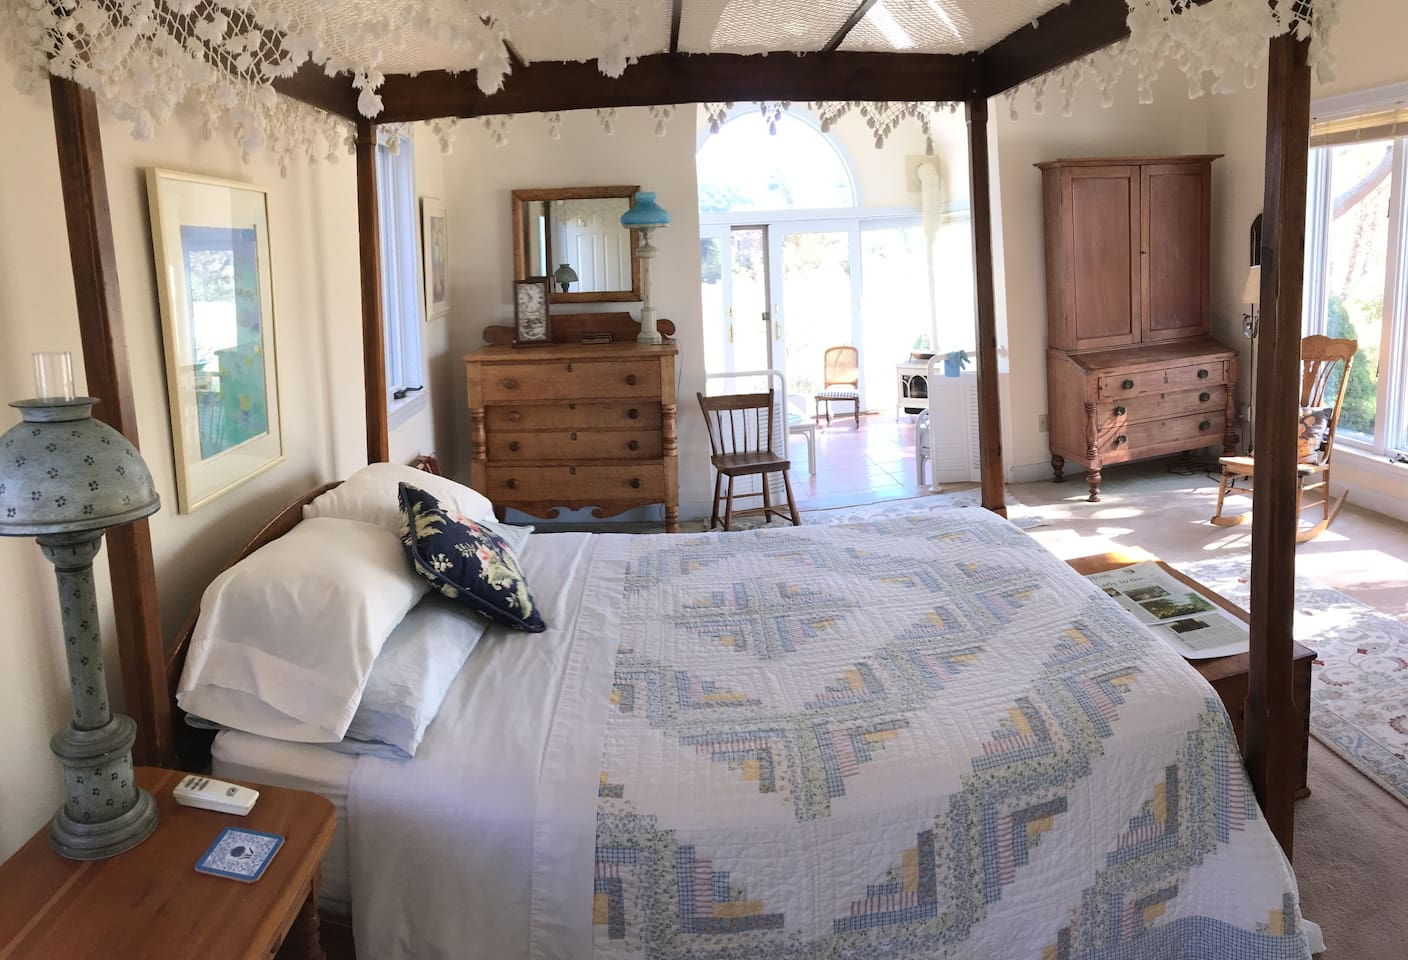 Your suite complete with private bath and sunroom with own entrance from garden